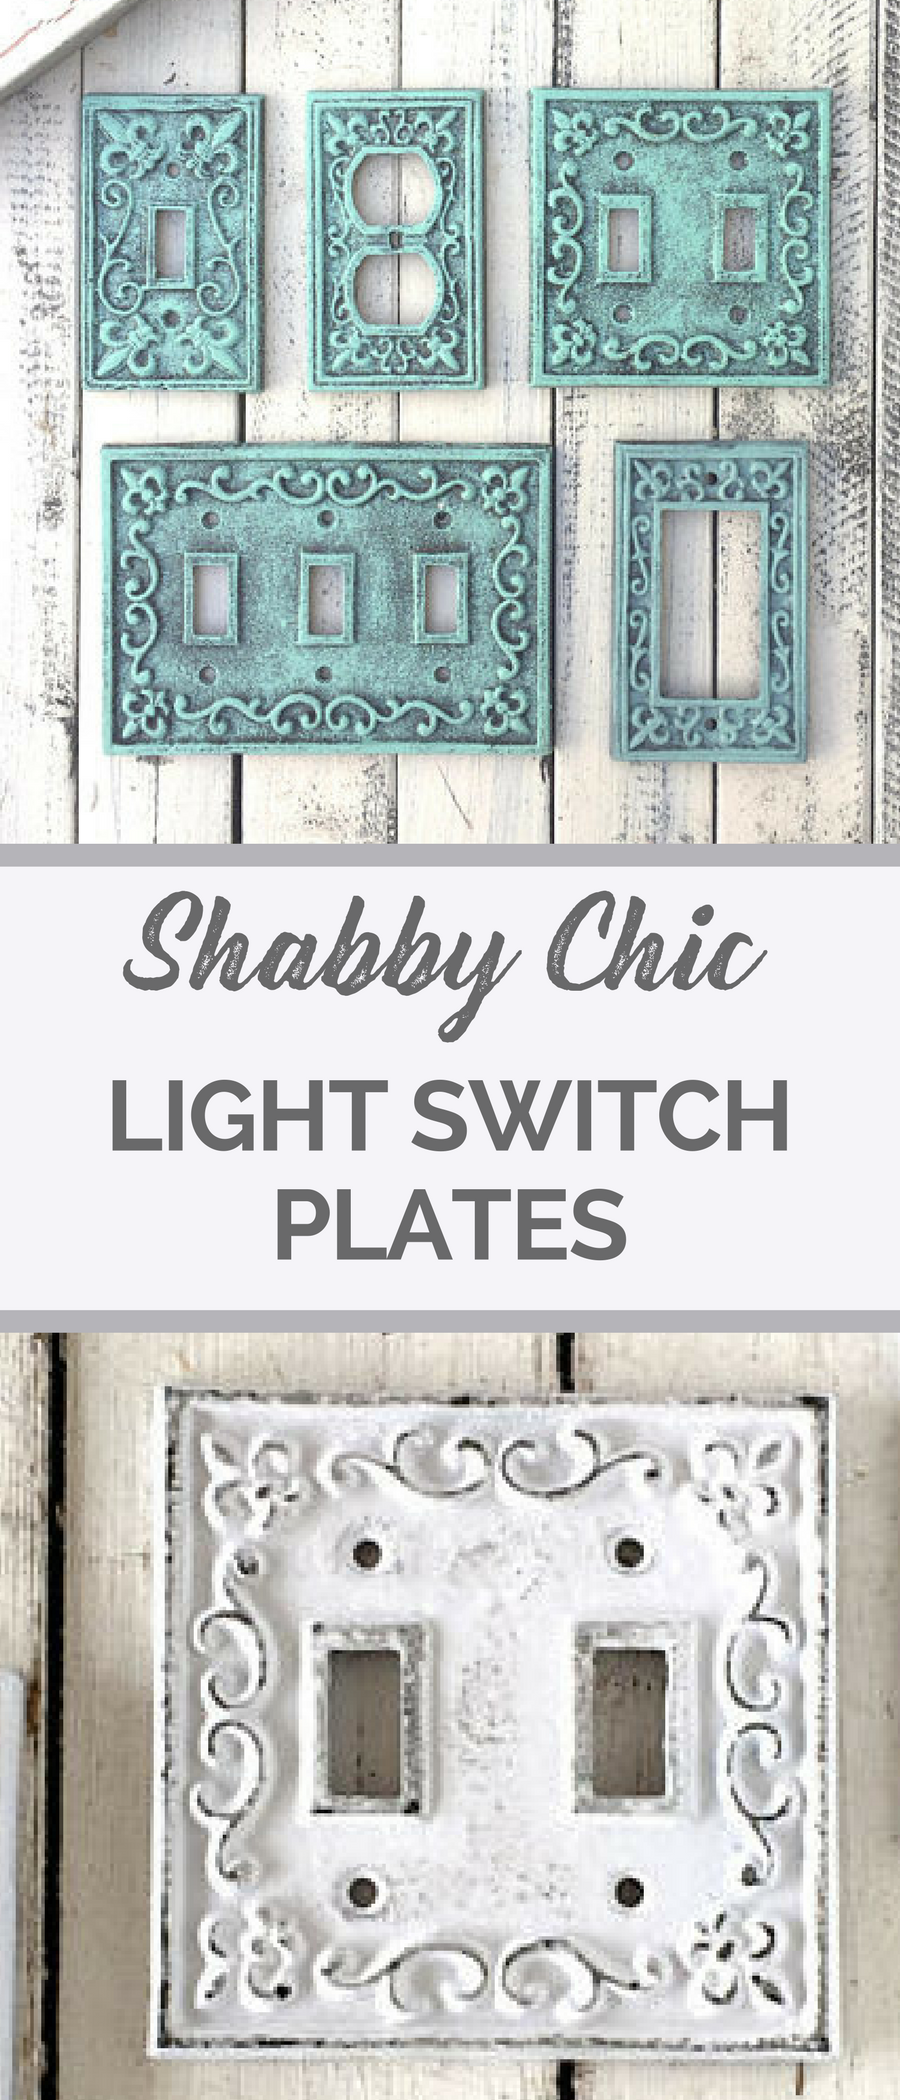 Shabby chic home decor Metal scroll lightswitch plates